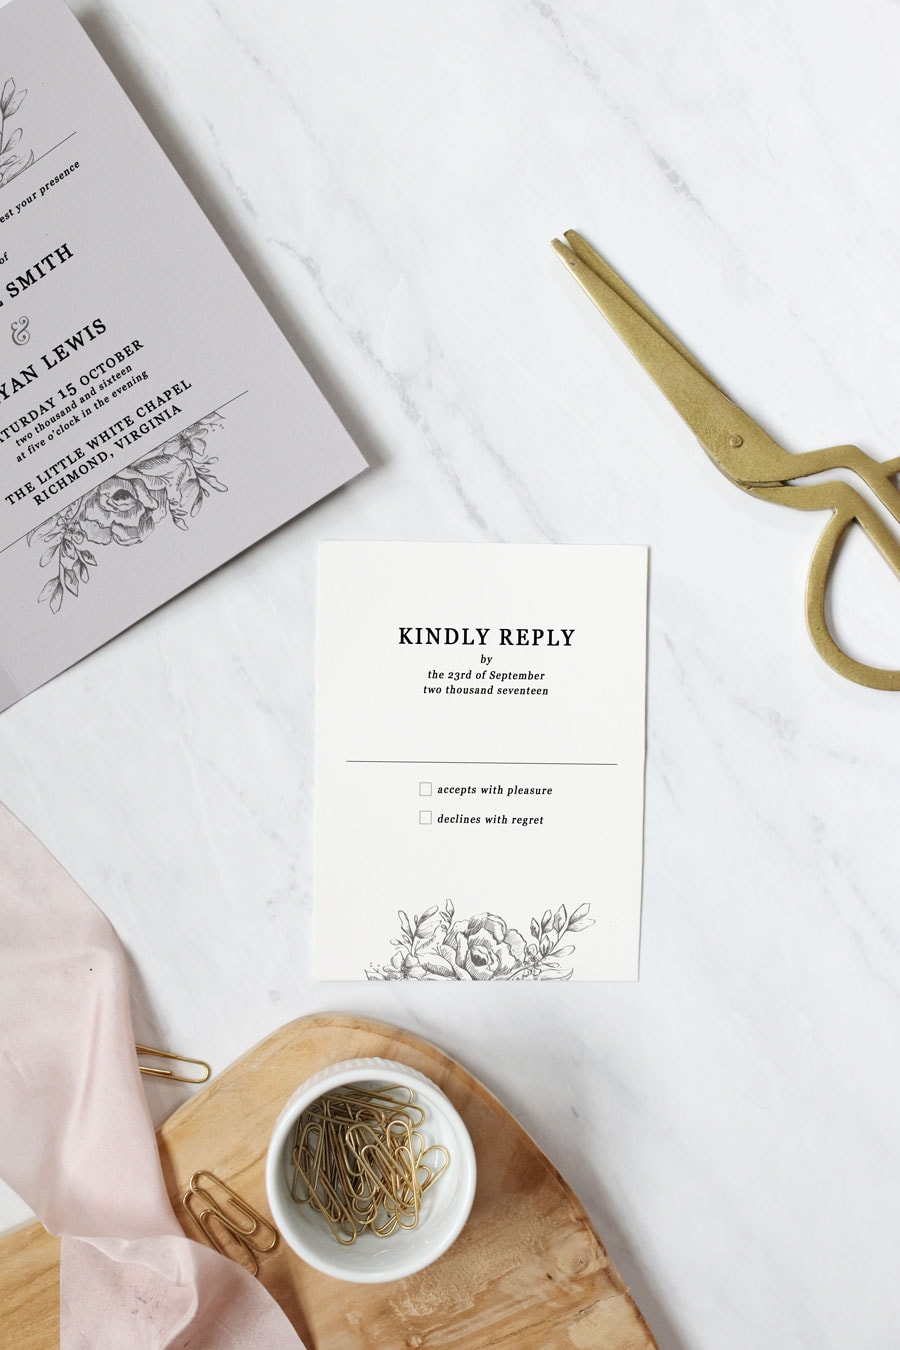 These DIY folded wedding invitations are more like keepsakes than expenses. Make good use of the extra space for displaying a favorite quote or bible verse.